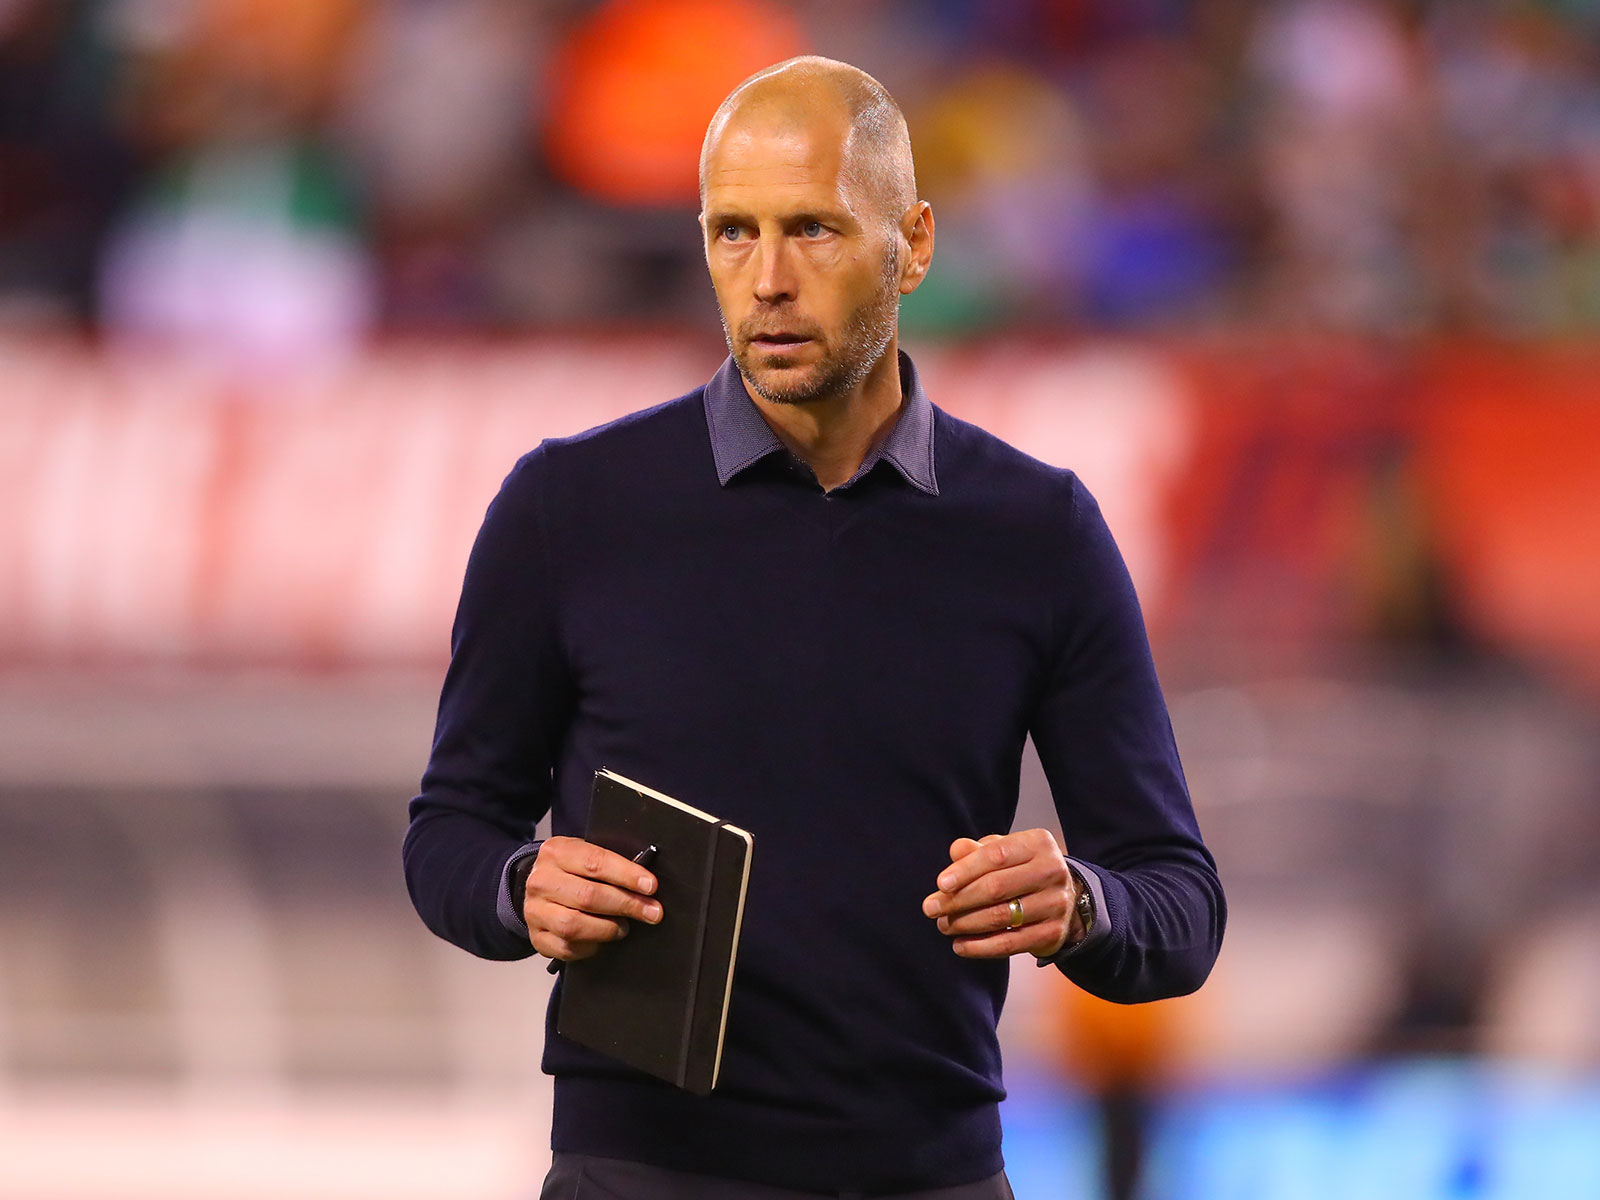 Gregg Berhalter and the USMNT fall to Mexico in consecutive matches